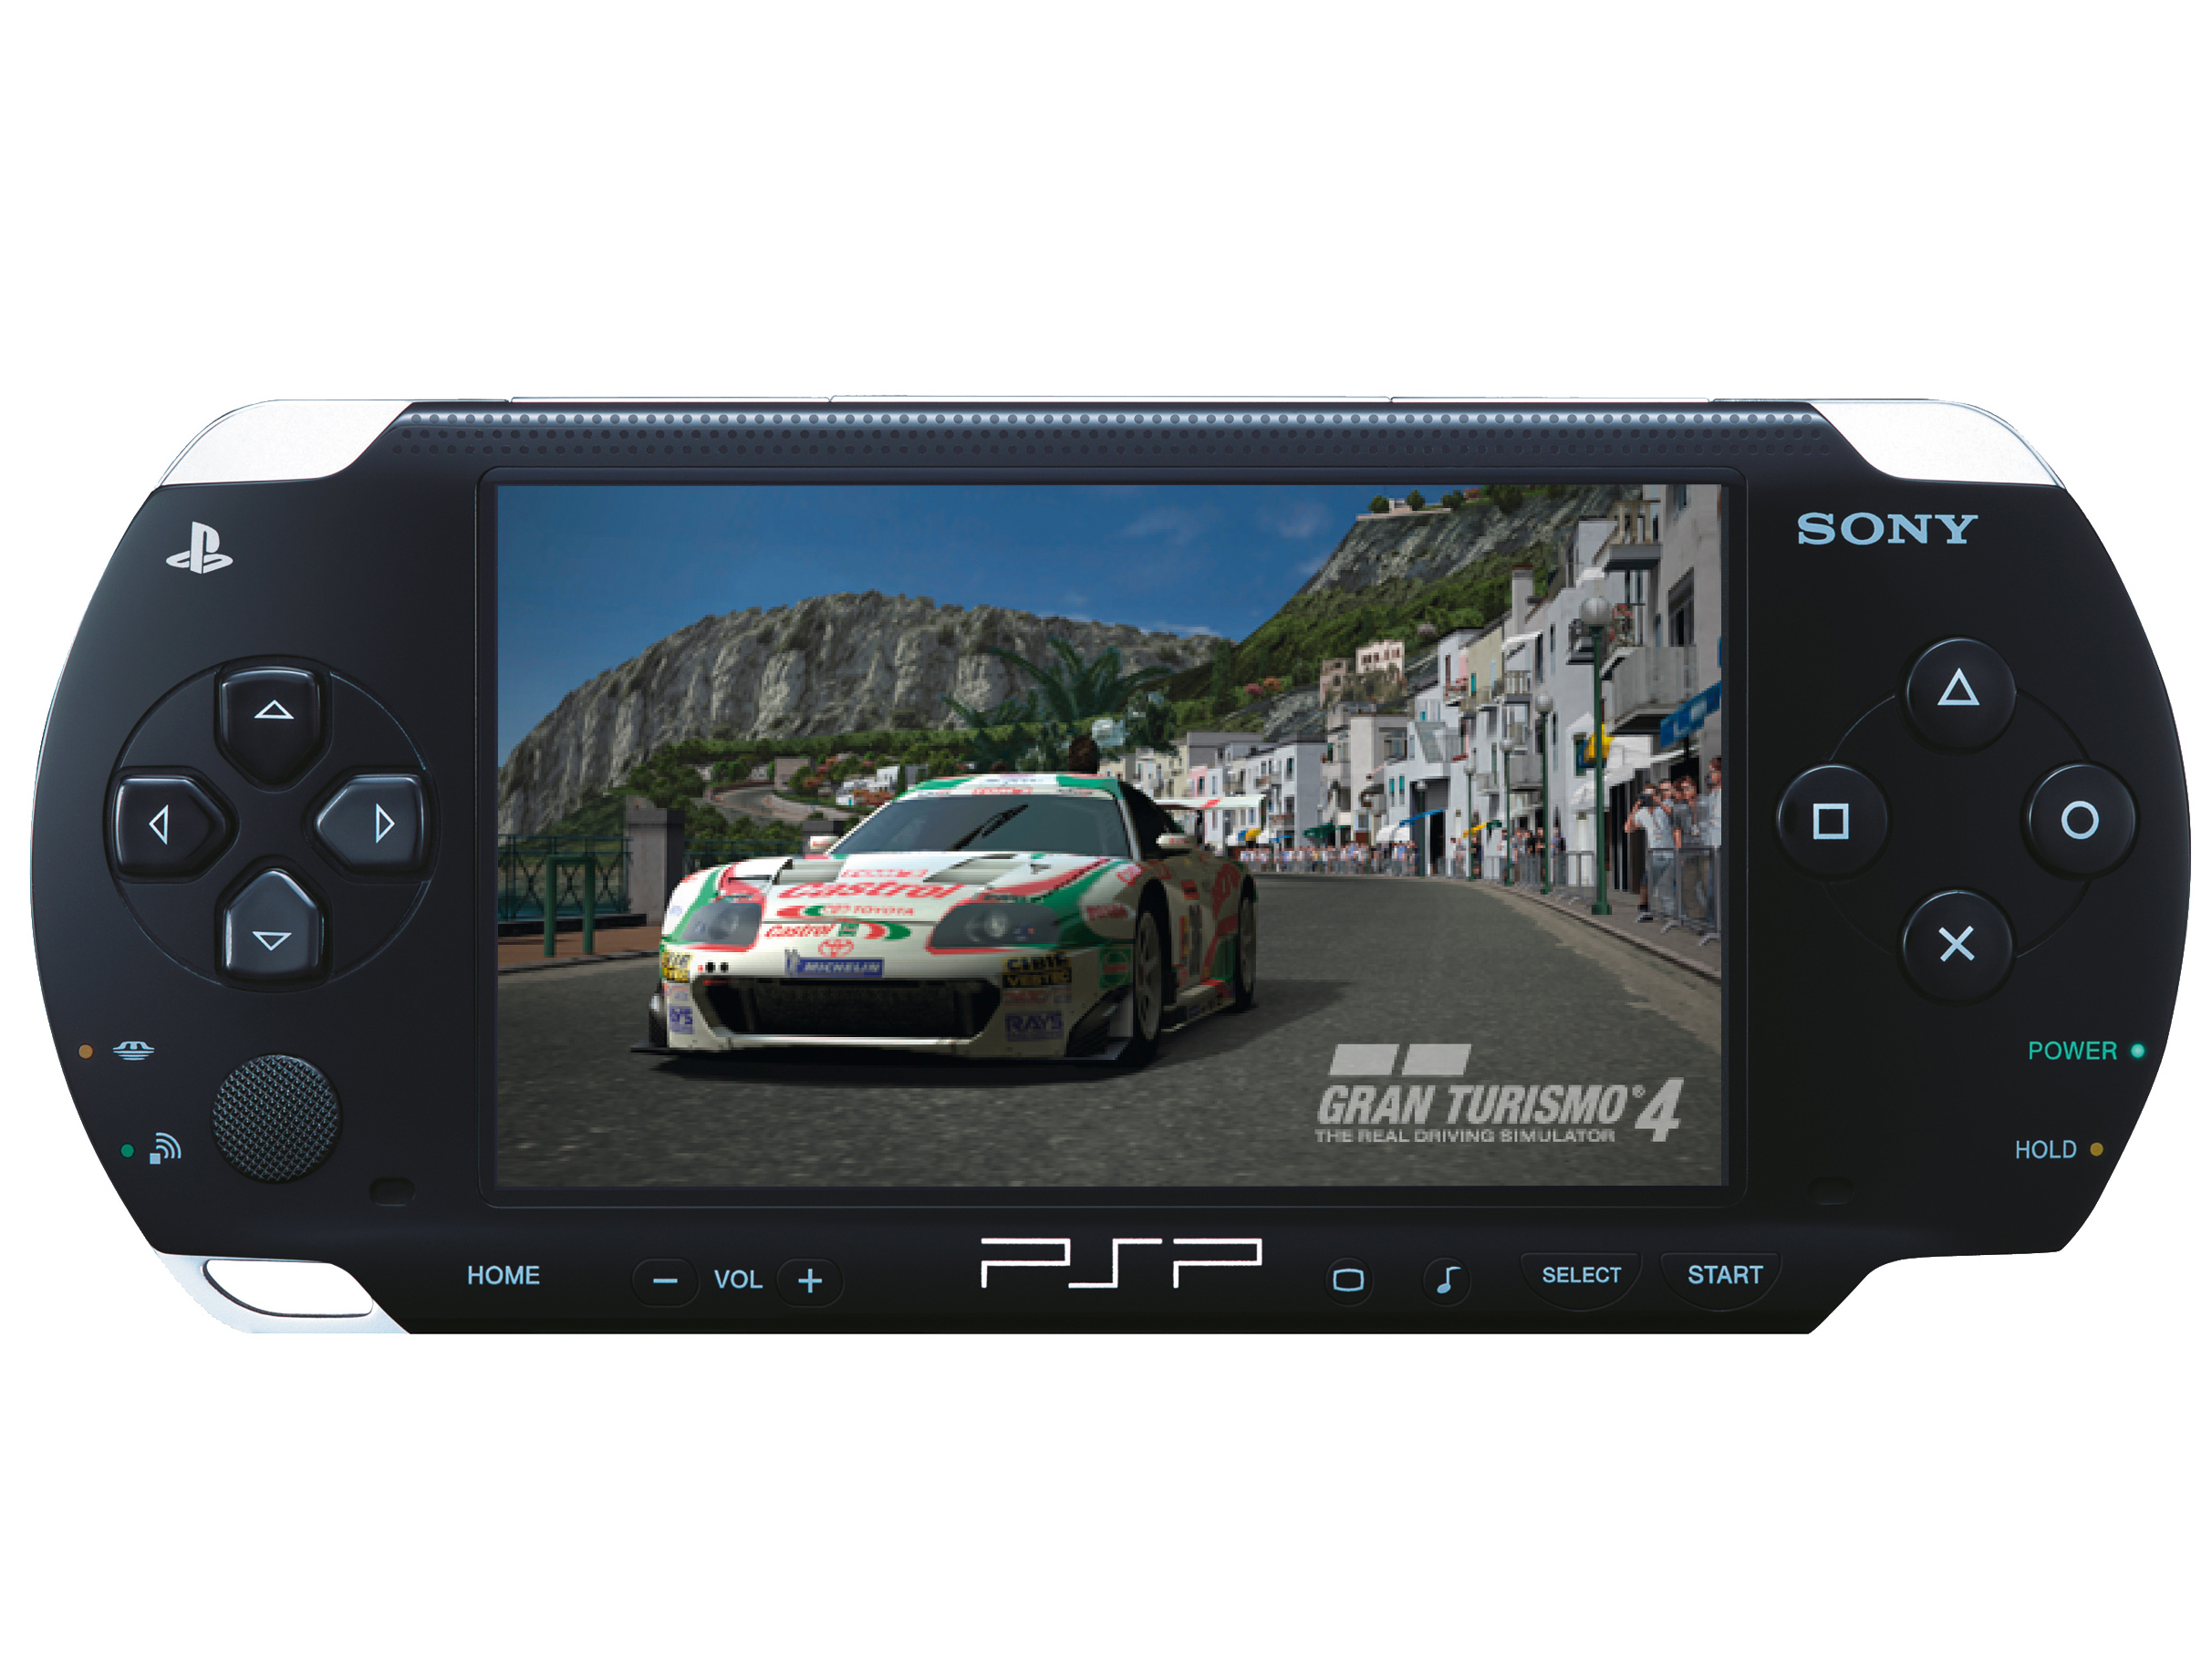 Sony's Psp: All In The Name Of Serious Fun